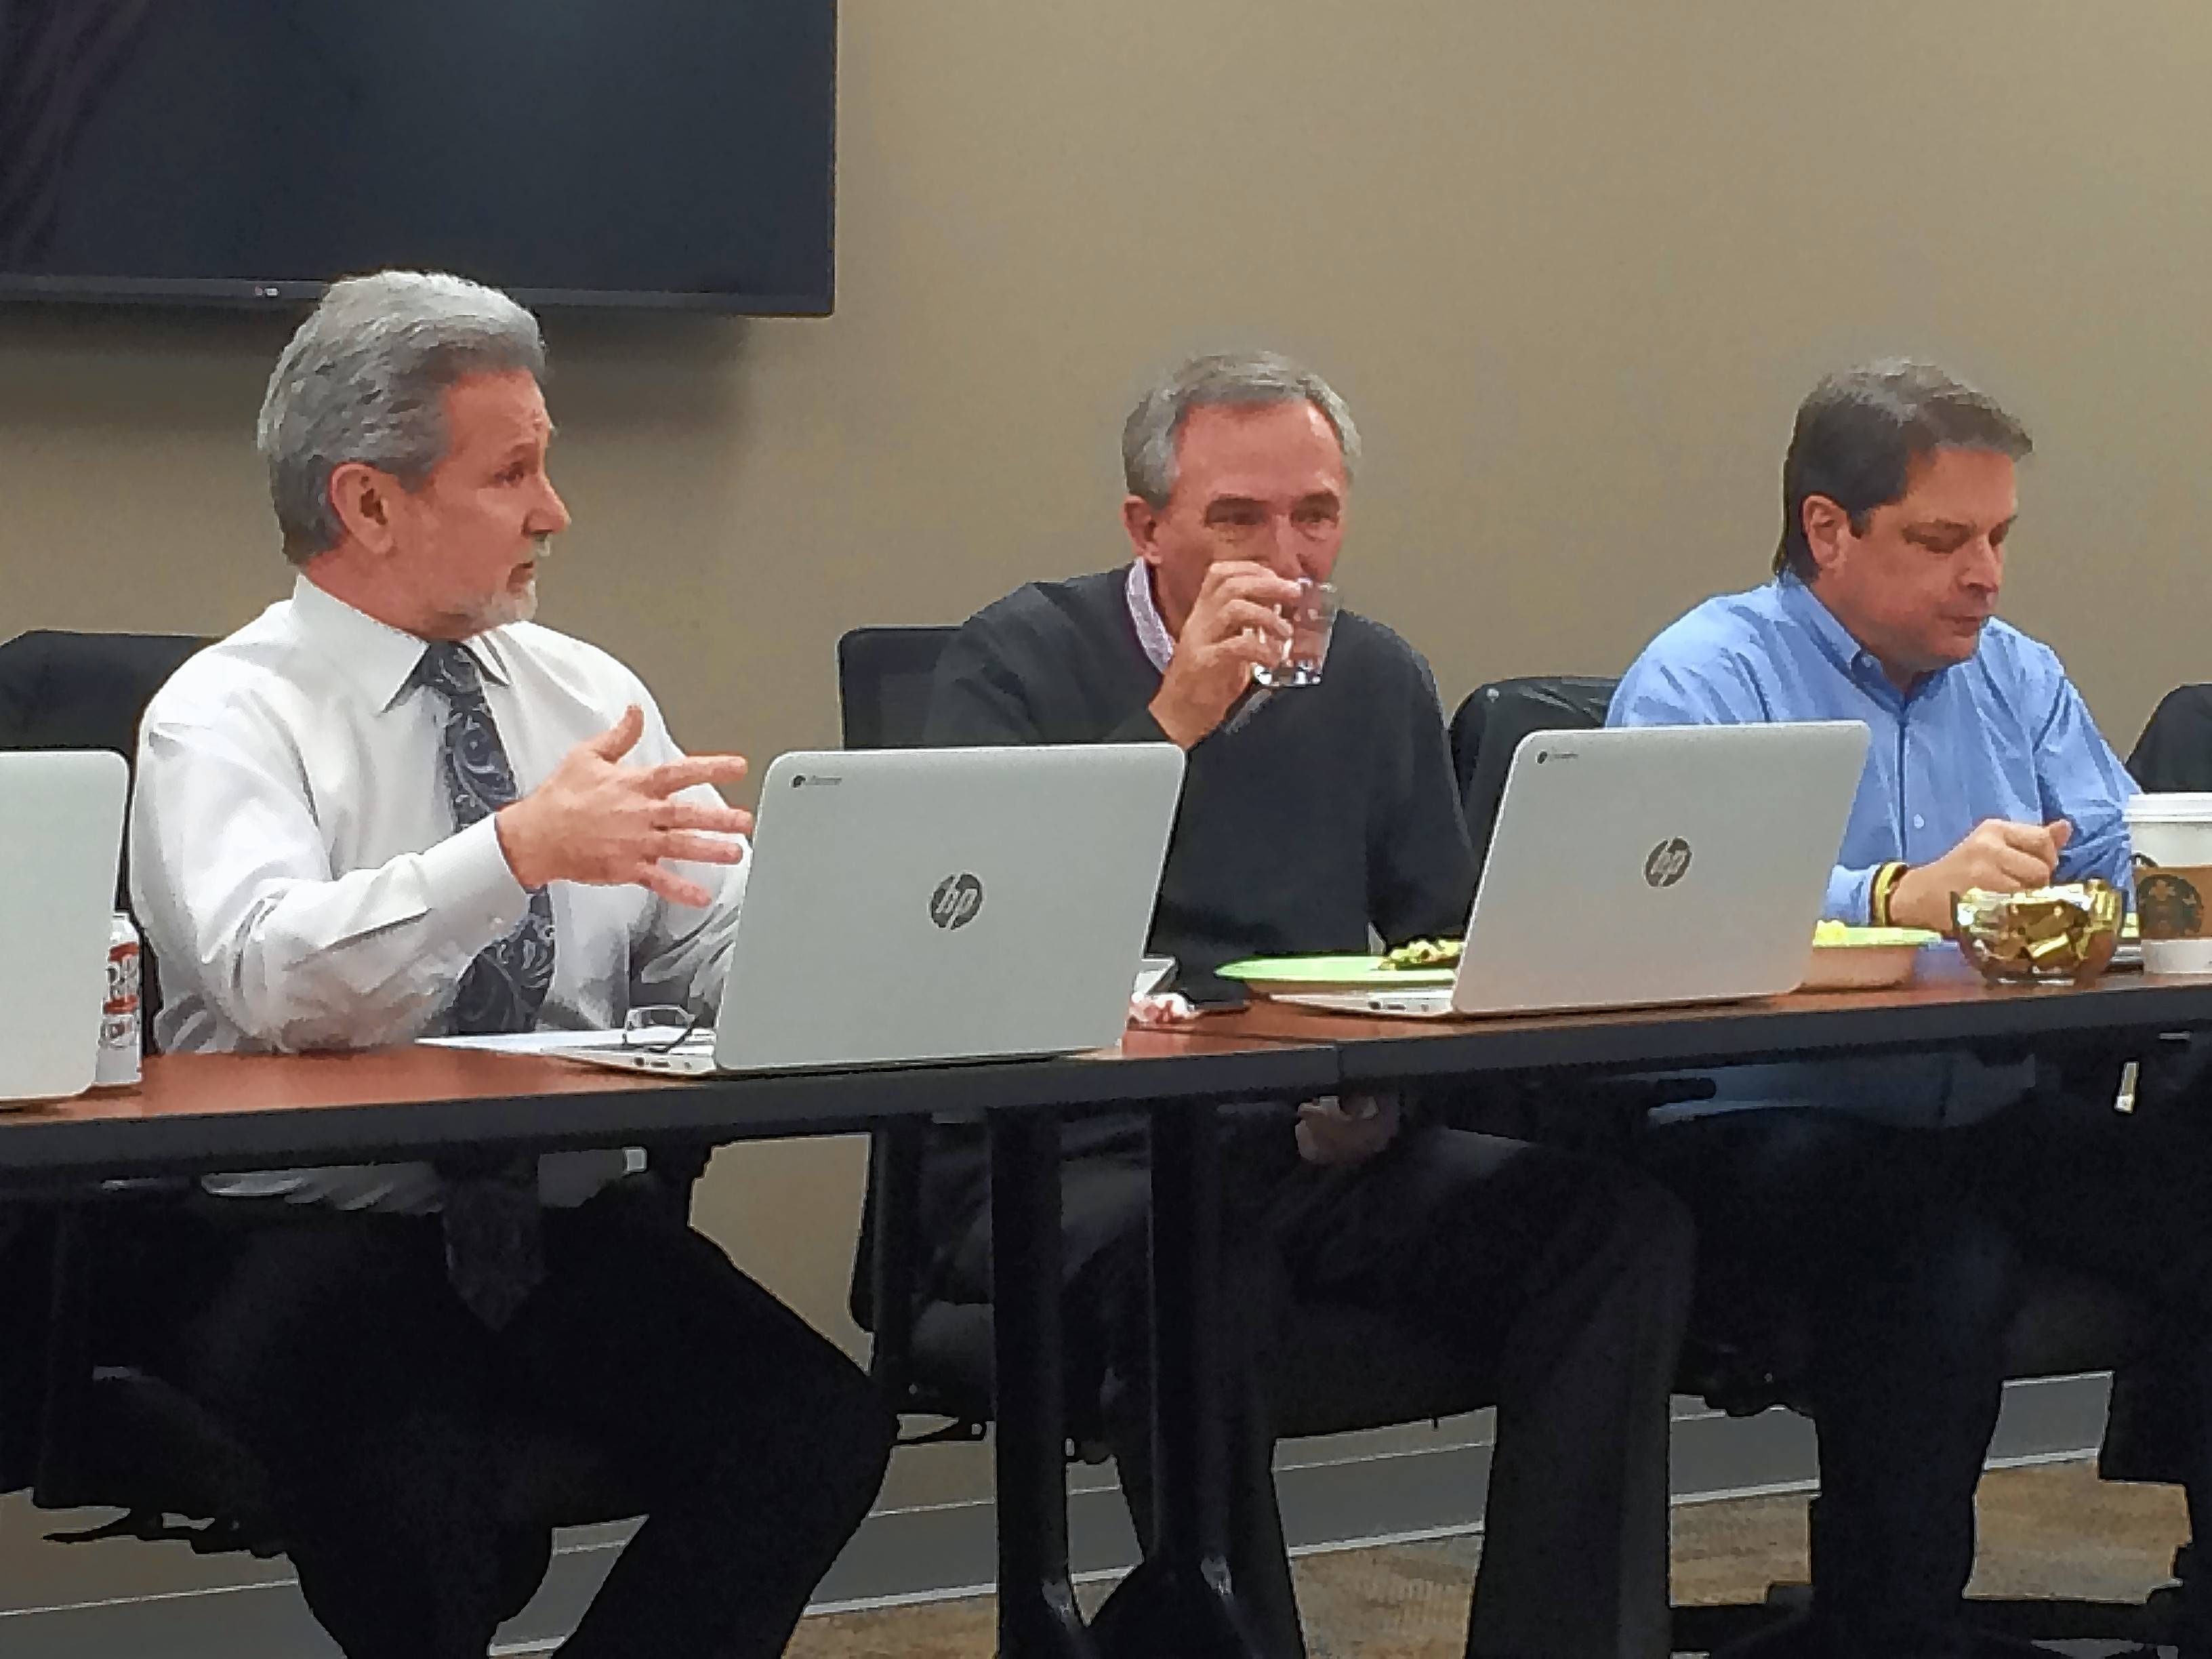 Superintendent Prentiss Lea, left, talks to Libertyville-Vernon Hills Area High School District 128 board members about the district's finances Monday night. Board members Pat Groody and Jim Batson sit to his left.